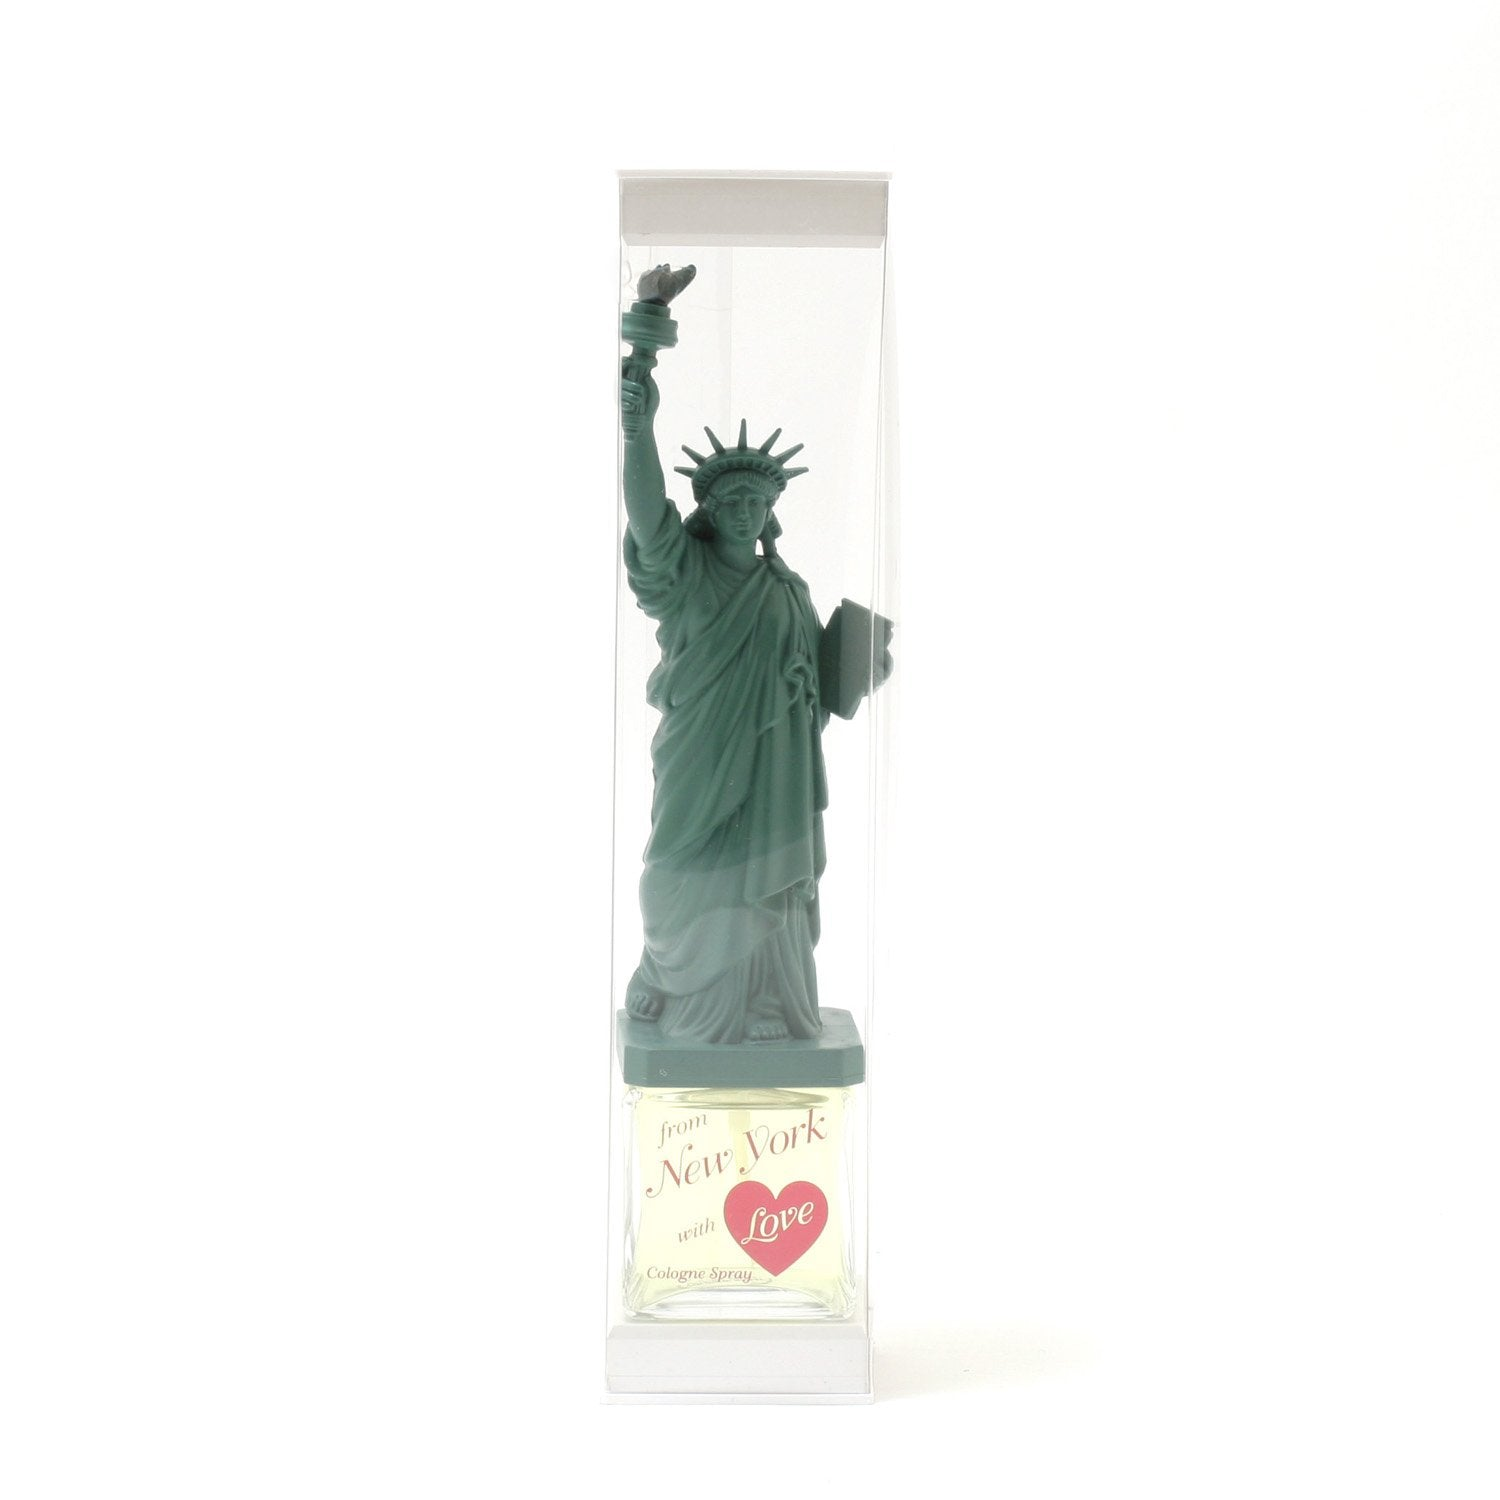 Perfume - STATUE OF LIBERTY FOR WOMEN -  COLOGNE SPRAY, 1.7 OZ